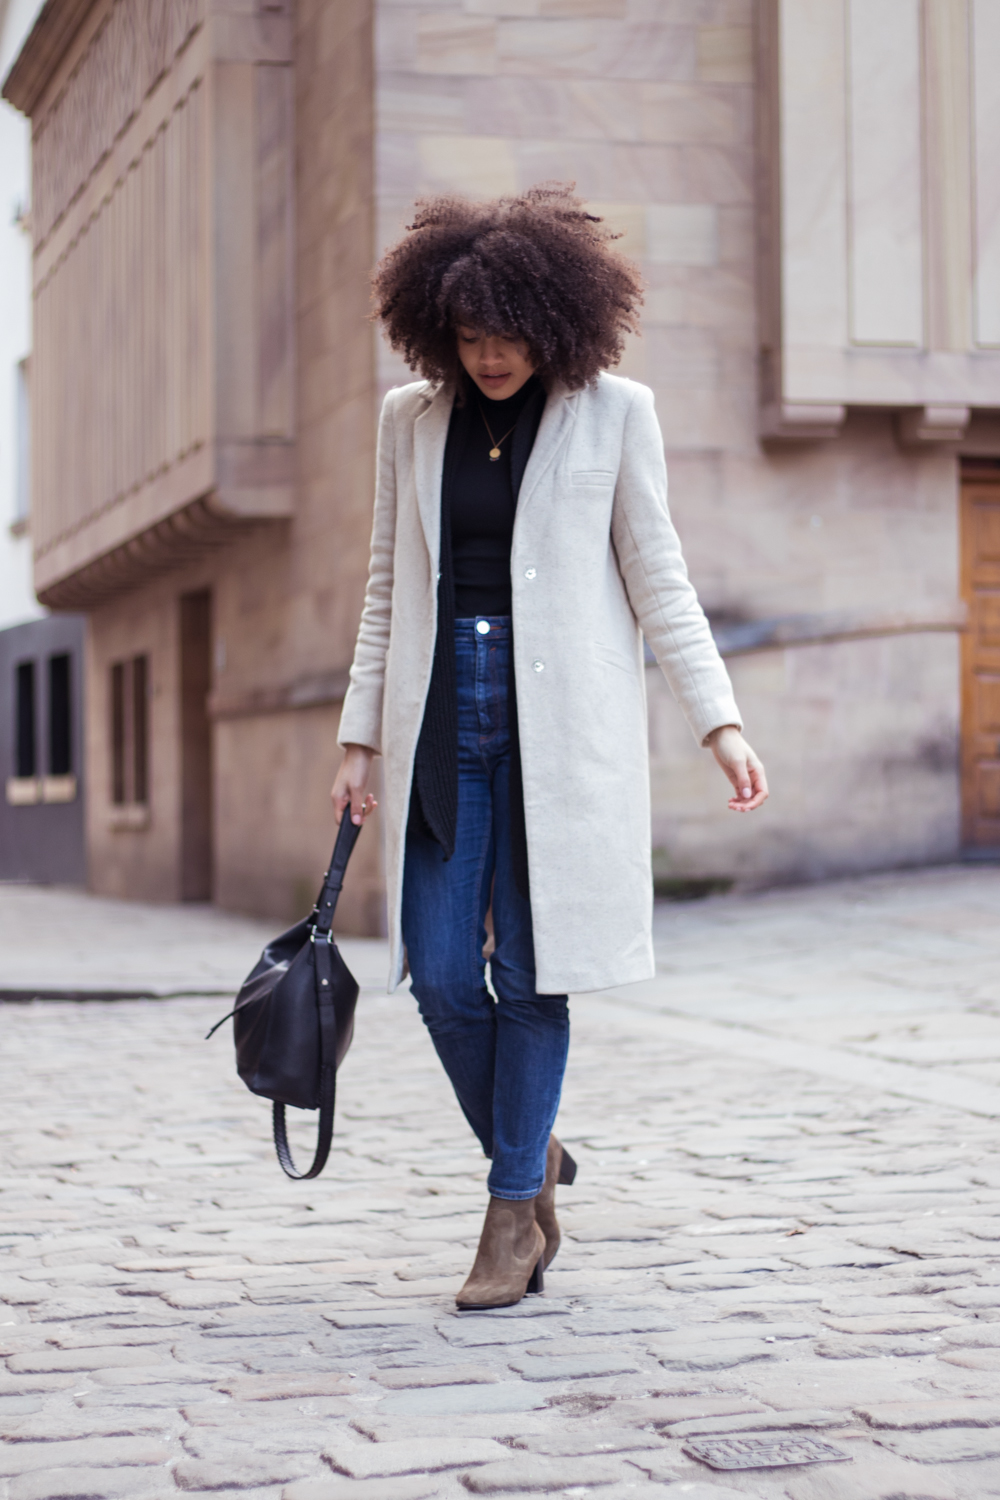 Minimal slim coat jeans and boots outfit